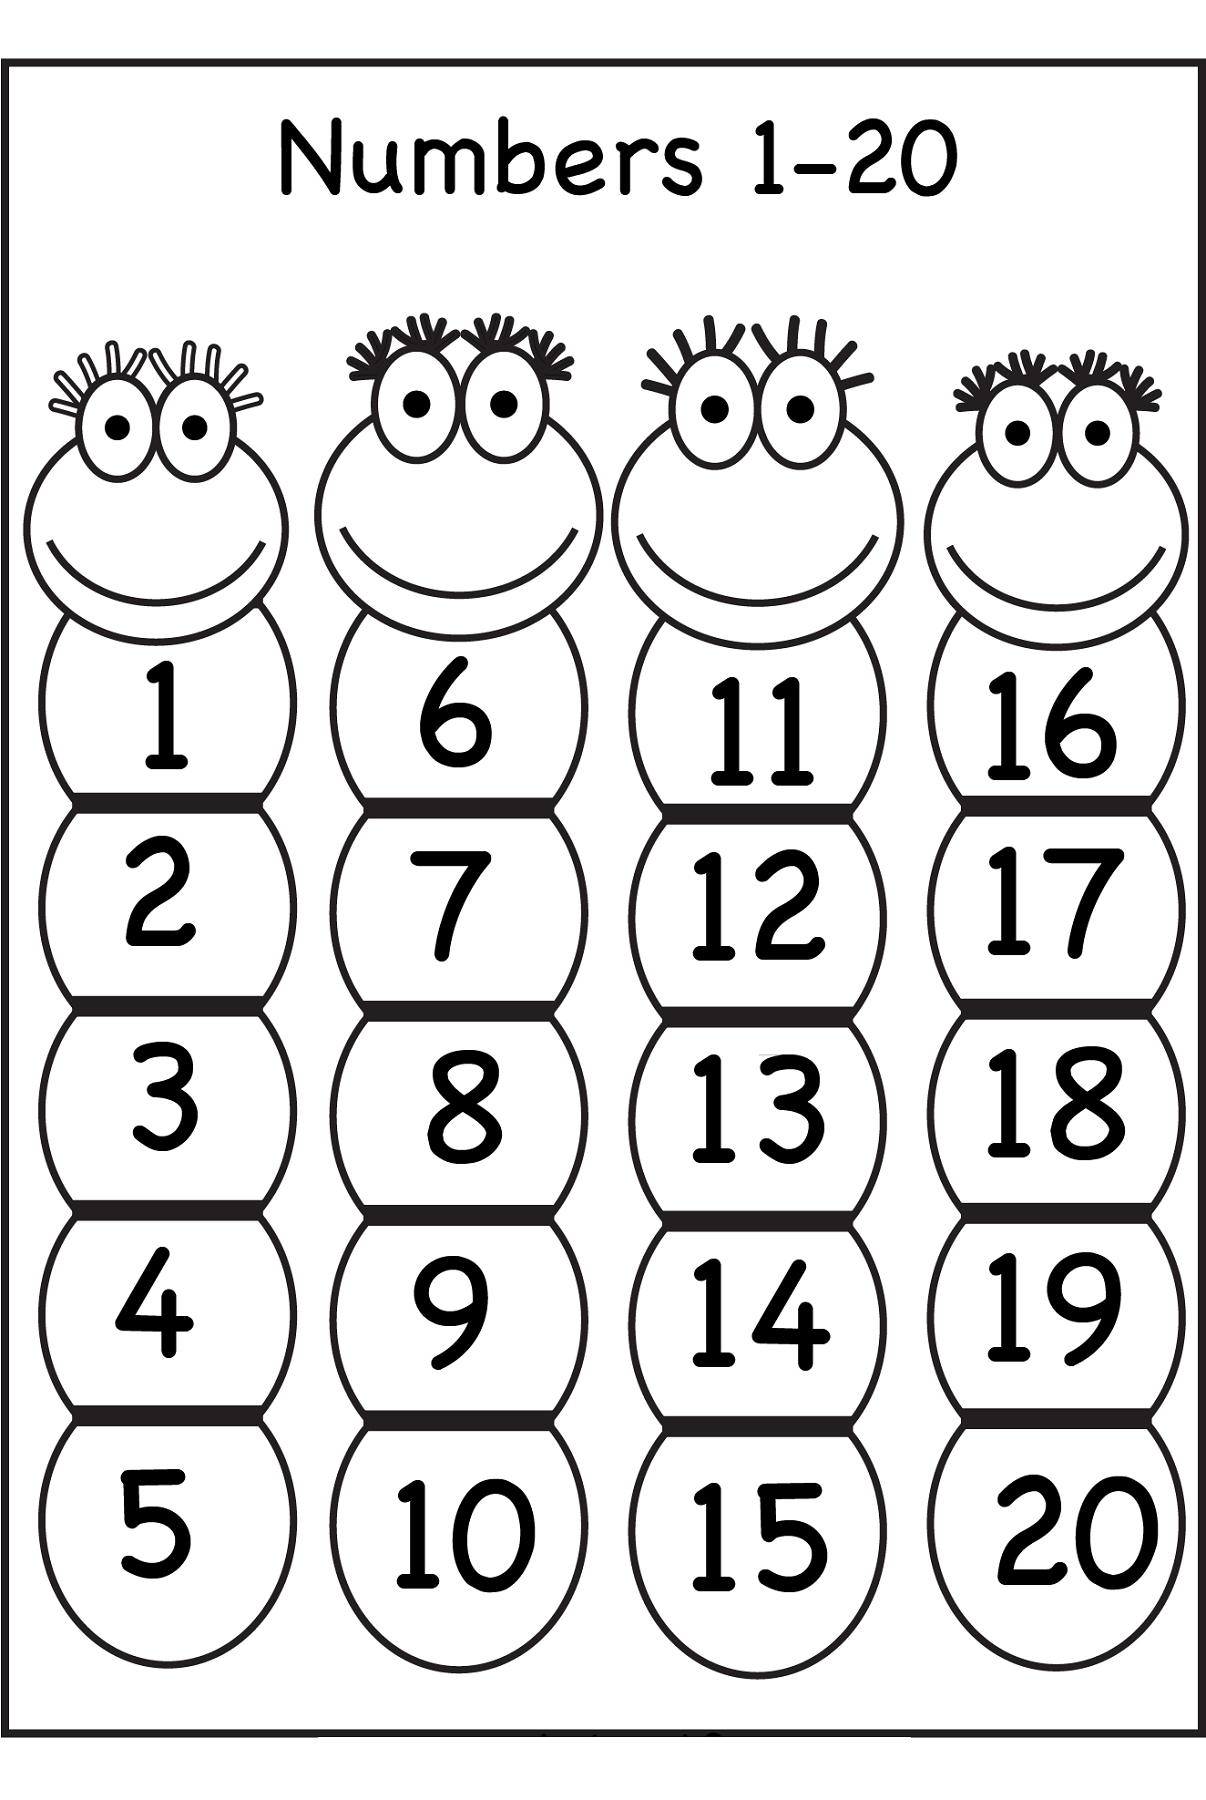 Coloring Pages Of Number 1 for Preschoolers Coloring Point Download ...